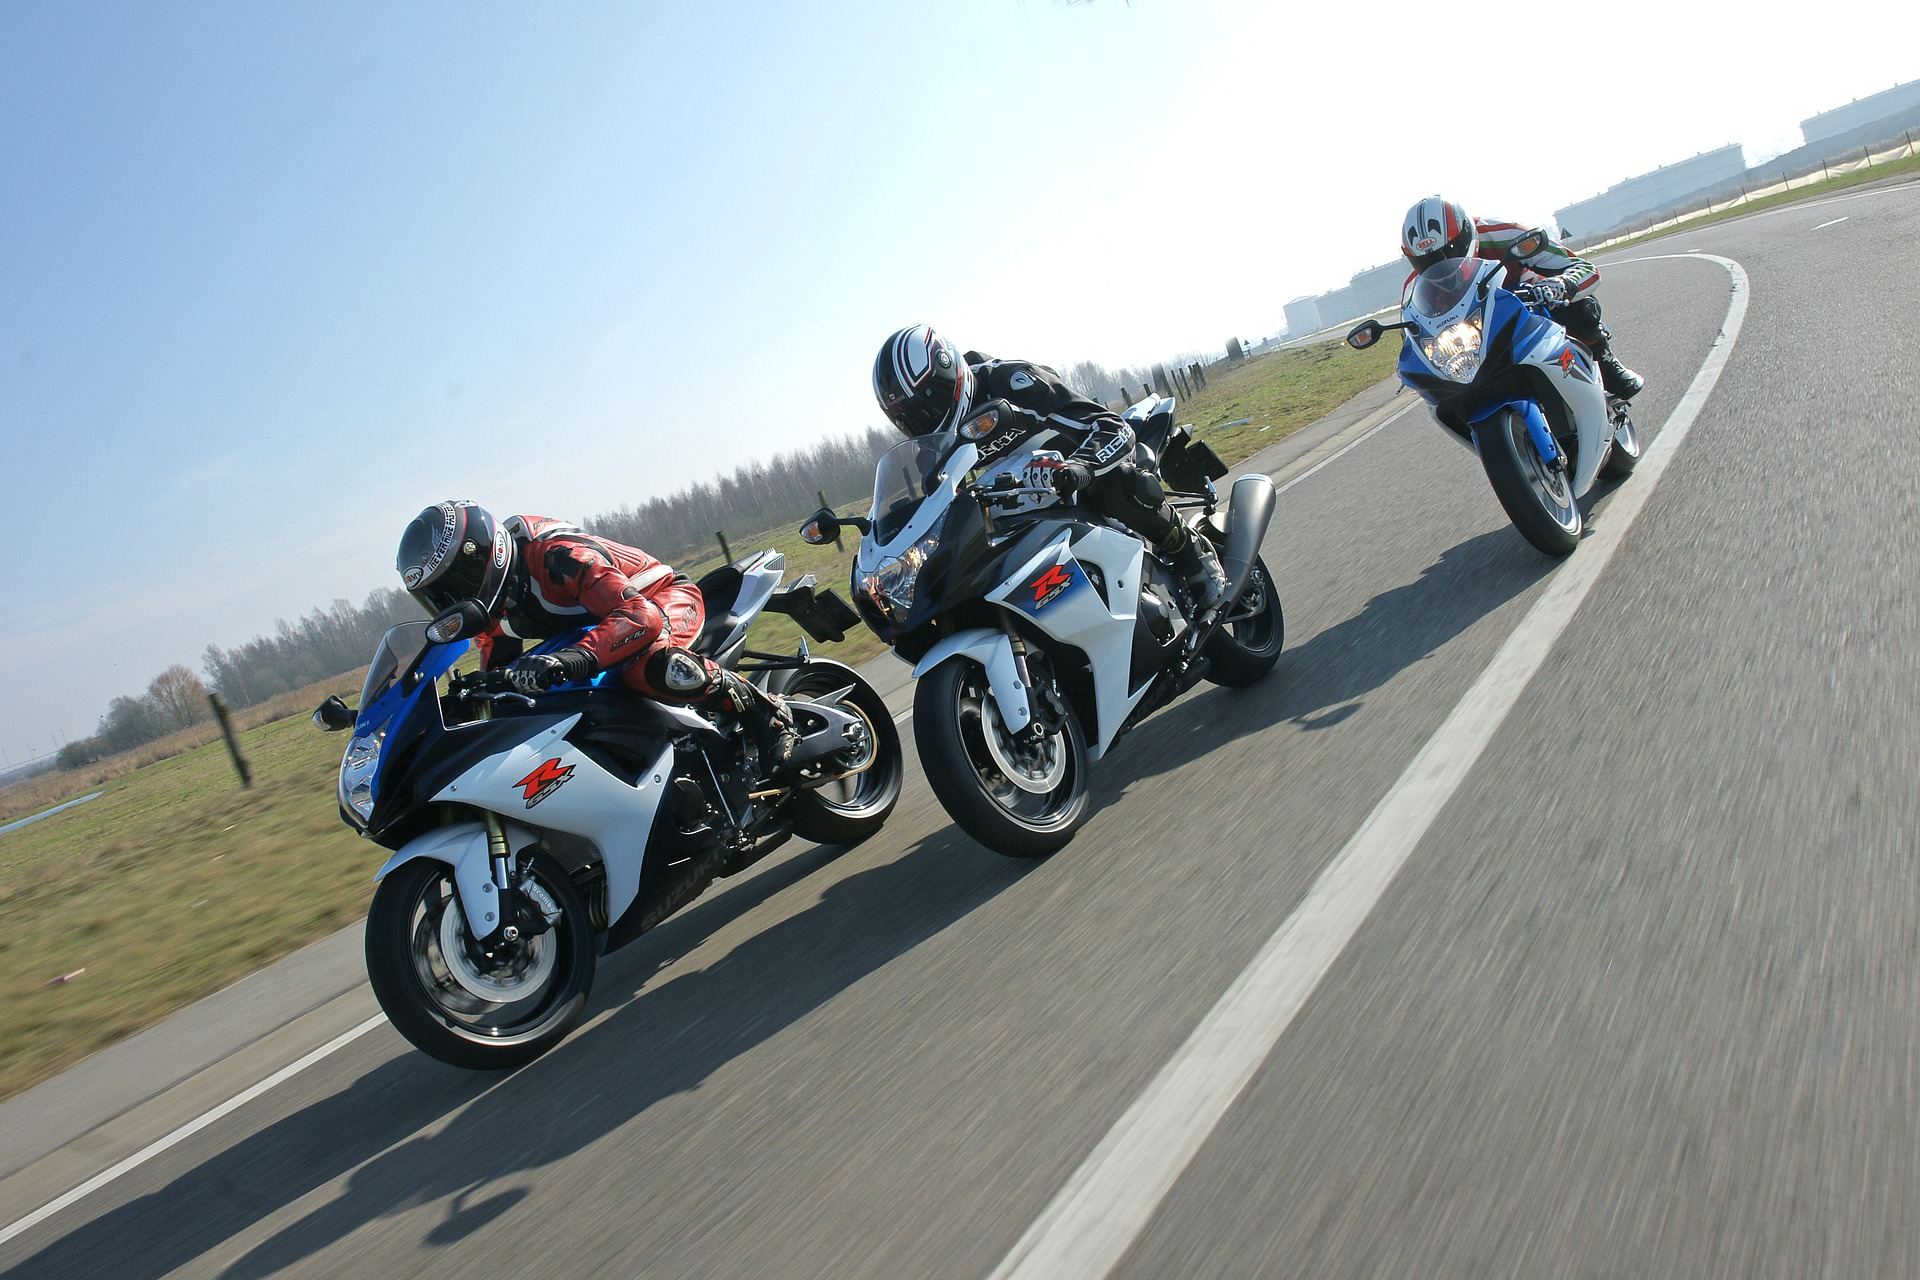 Group Ride Safety